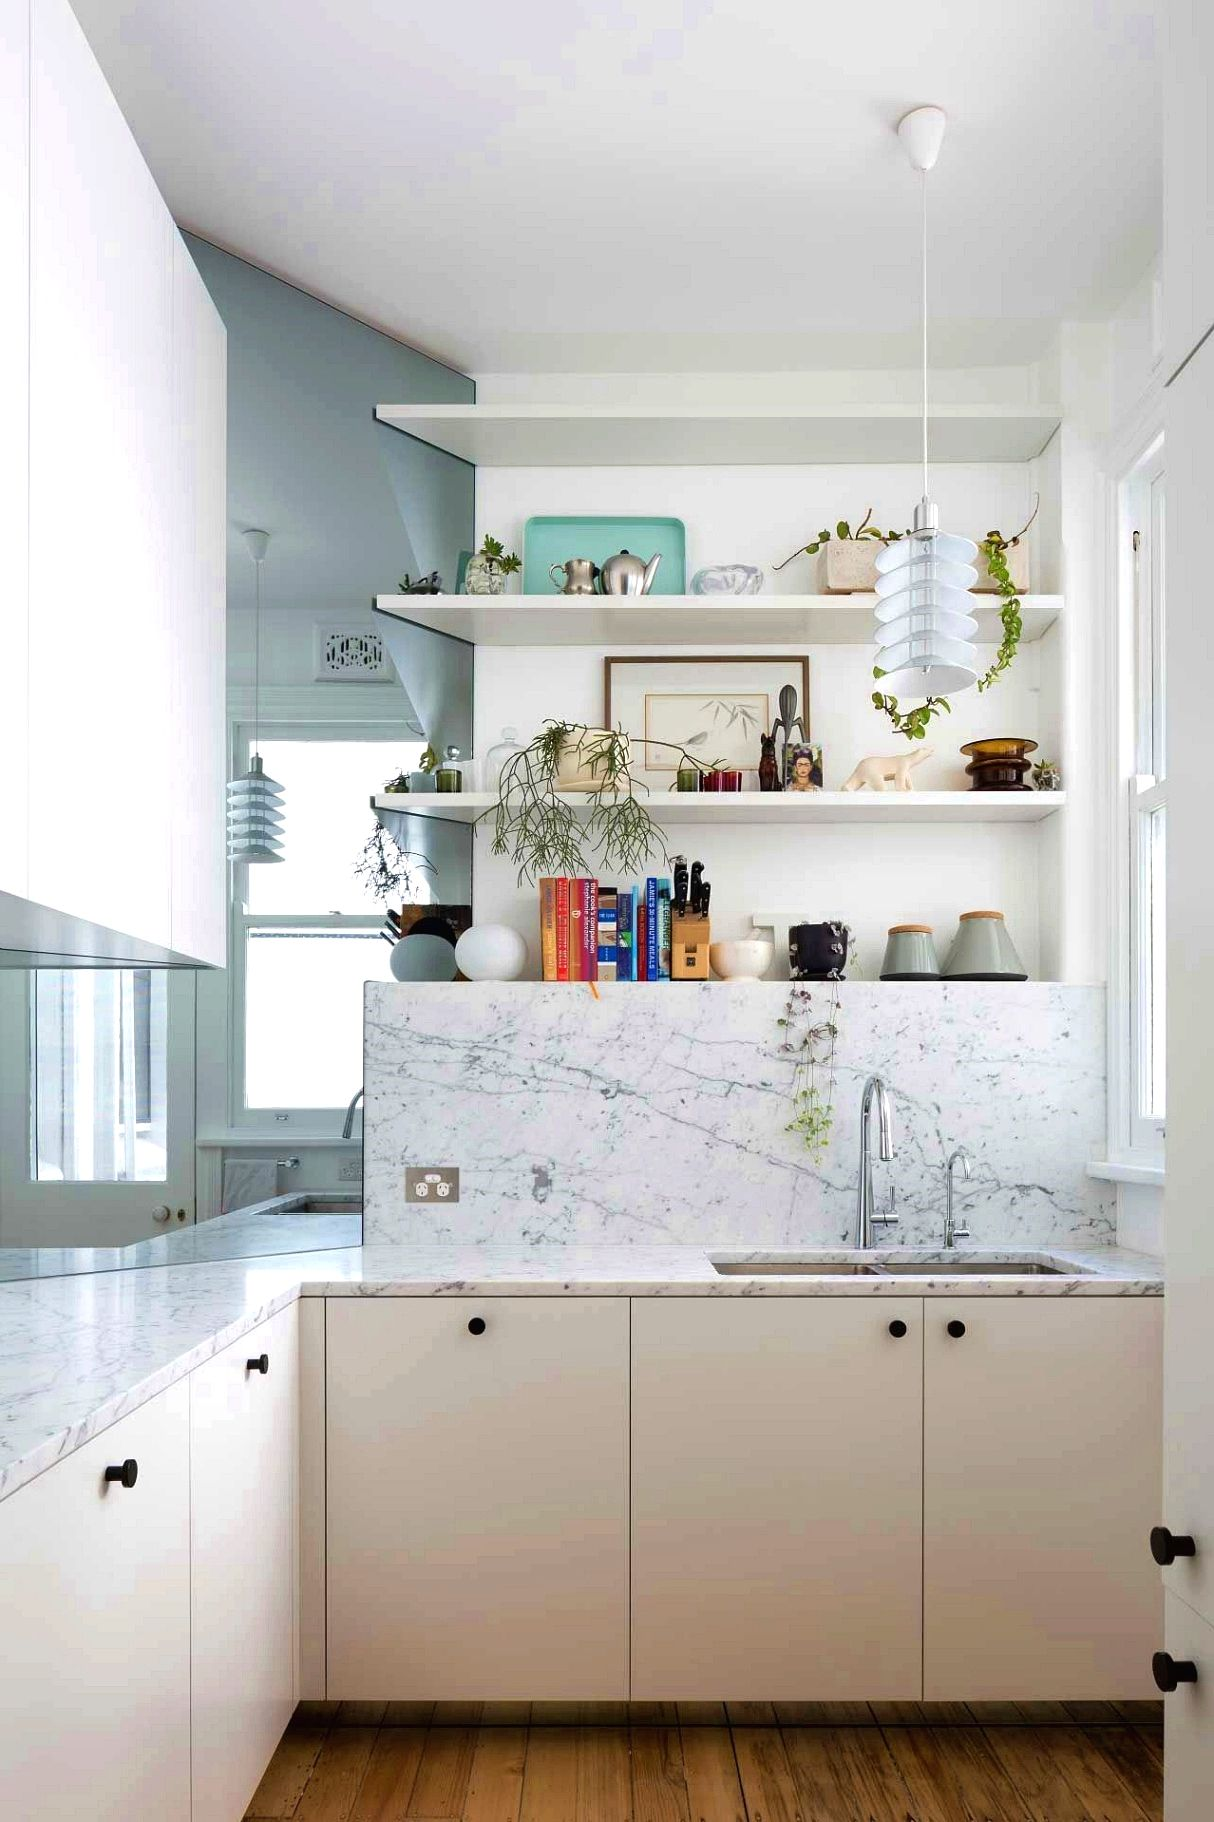 Beautiful kitchen decor and style ideas - Are you deciding ...